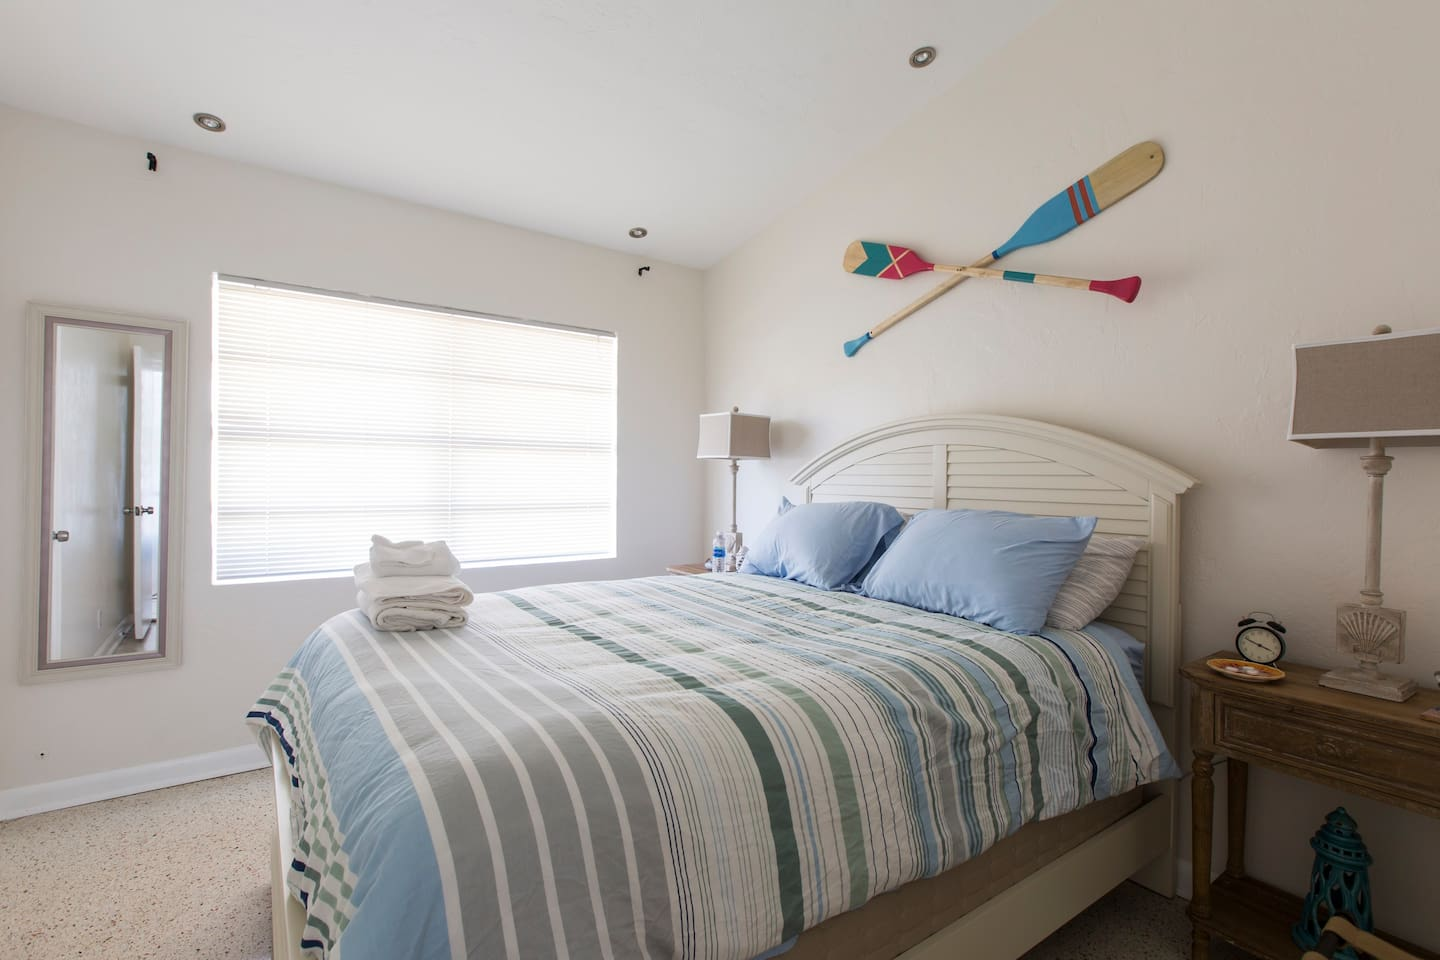 Your room. Top quality Tommy Bahama mattress with mattress protector, luxurious duvet and comfy pillows, luggage stands and alarm clock provided as well.